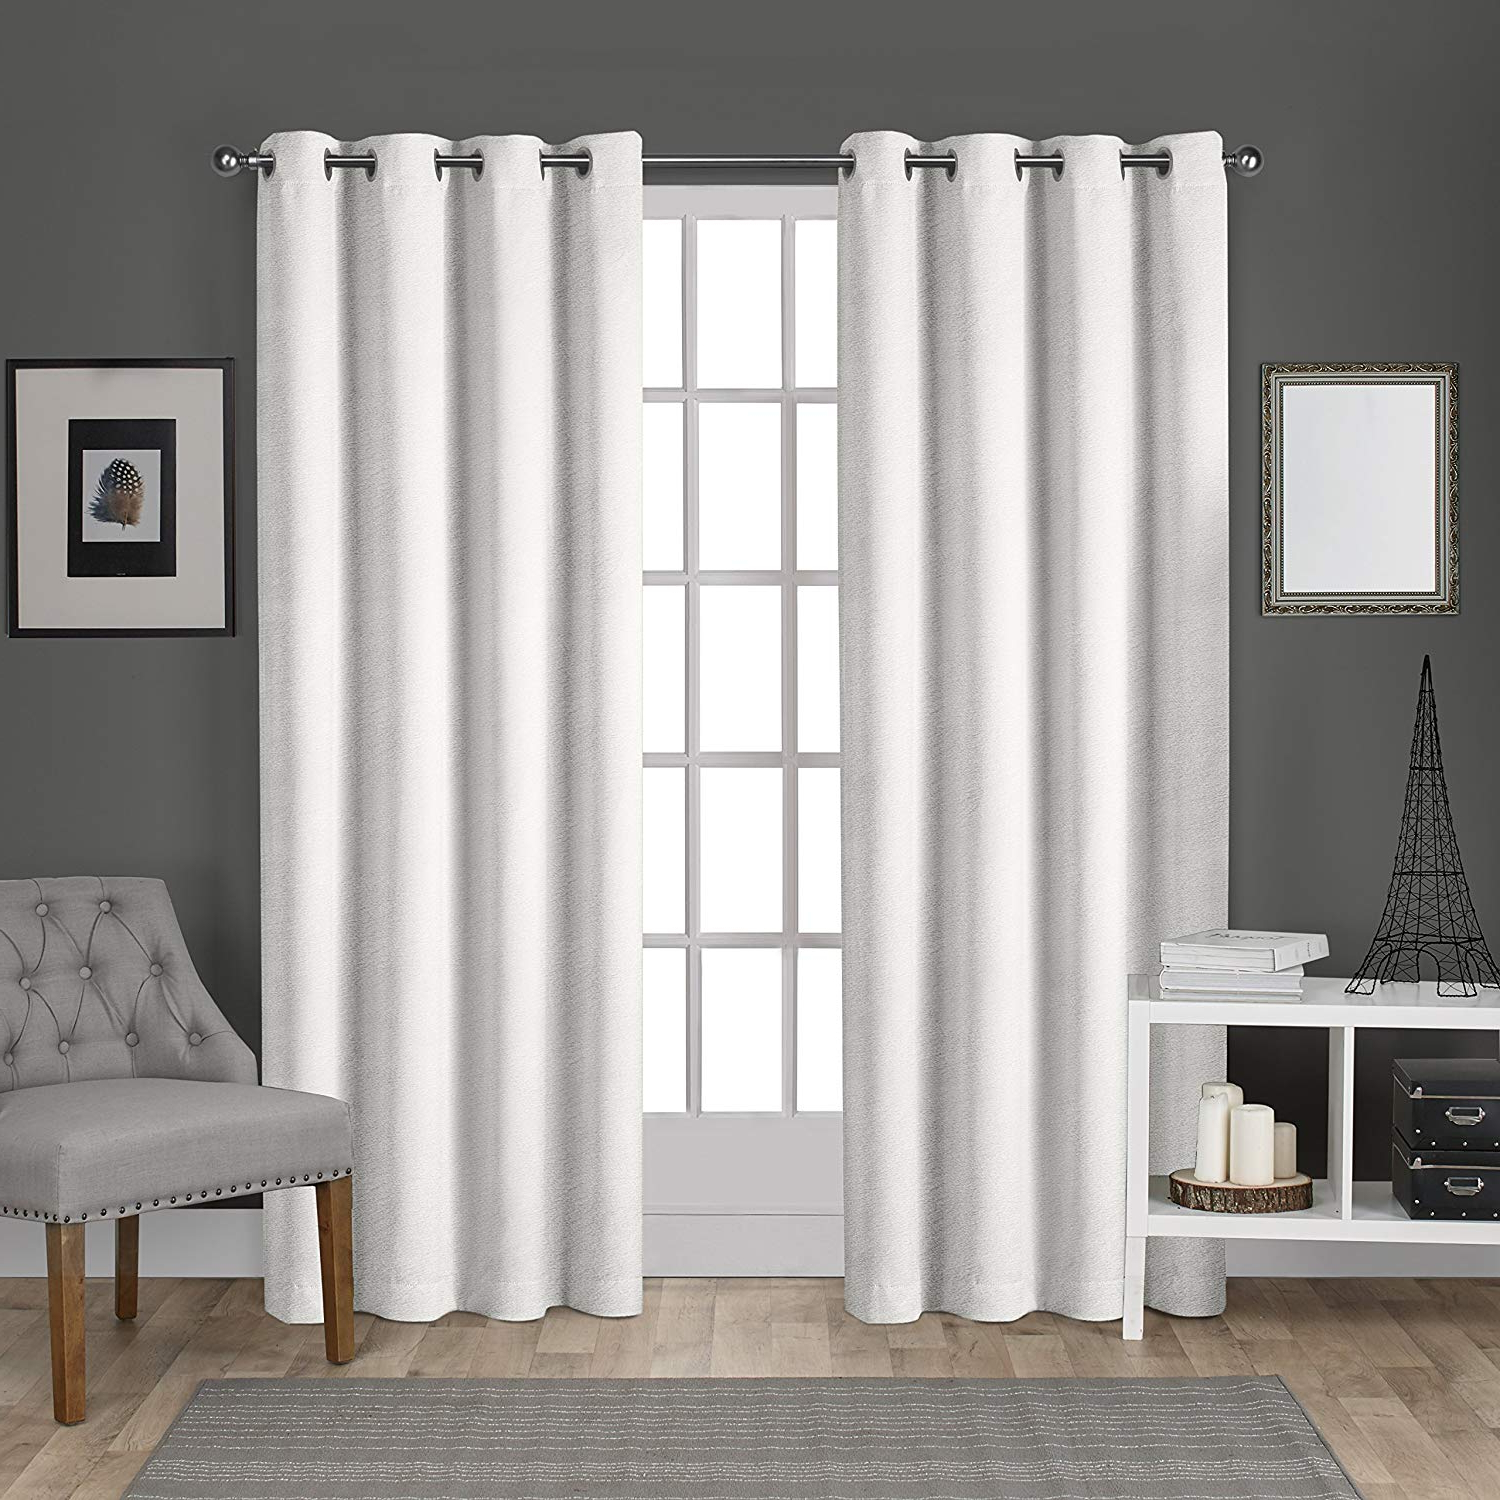 Exclusive Home Velvet Heavyweight Grommet Top Curtain Panel Pair, Winter White, 54x96 For Recent Velvet Heavyweight Grommet Top Curtain Panel Pairs (View 4 of 20)